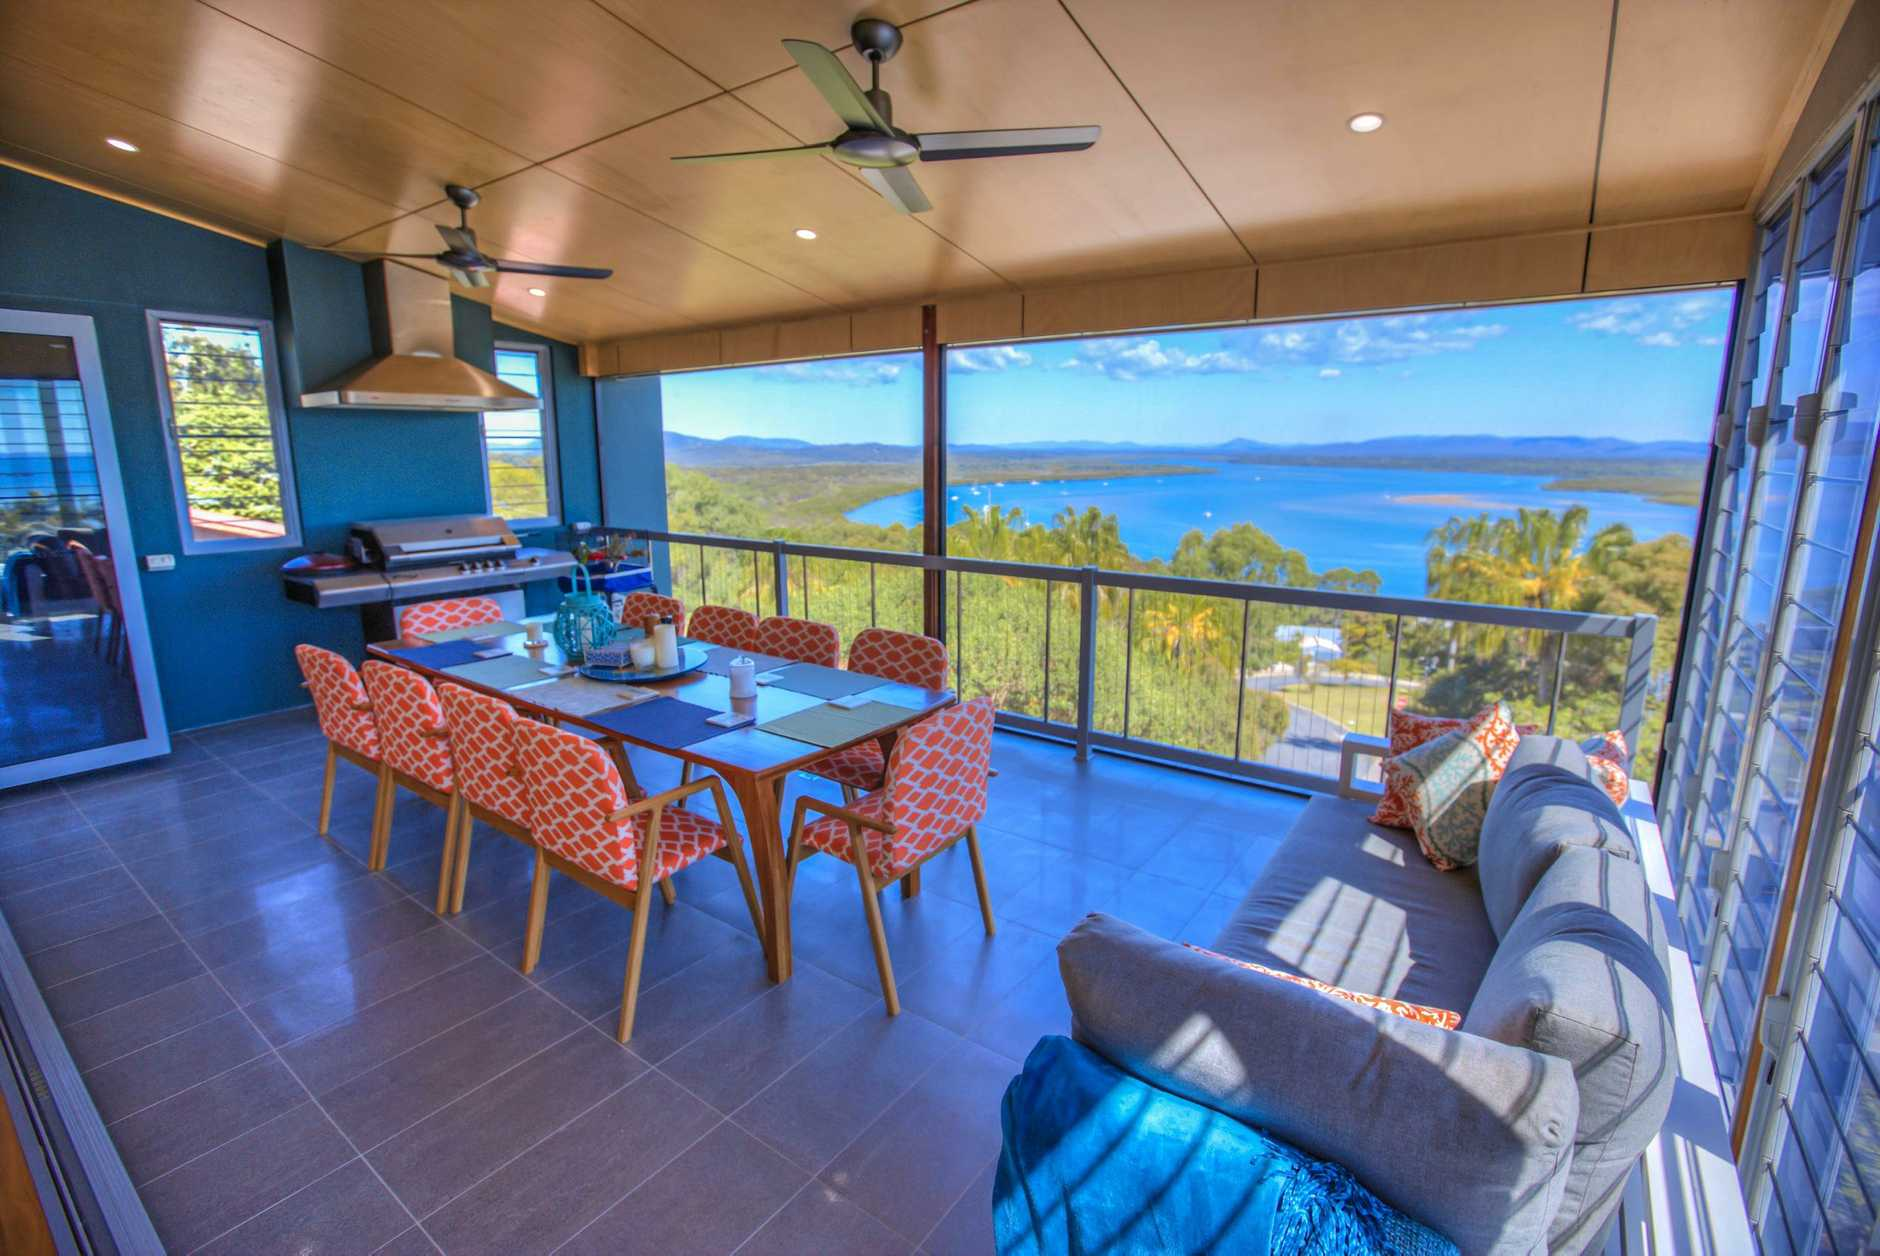 DREAM HOME: Winner of the 2019 Wide Bay Burnett House of the Year, Maiden Homes Pty Ltd, took out the title for its Seventeen Seventy house, Swell Factor.